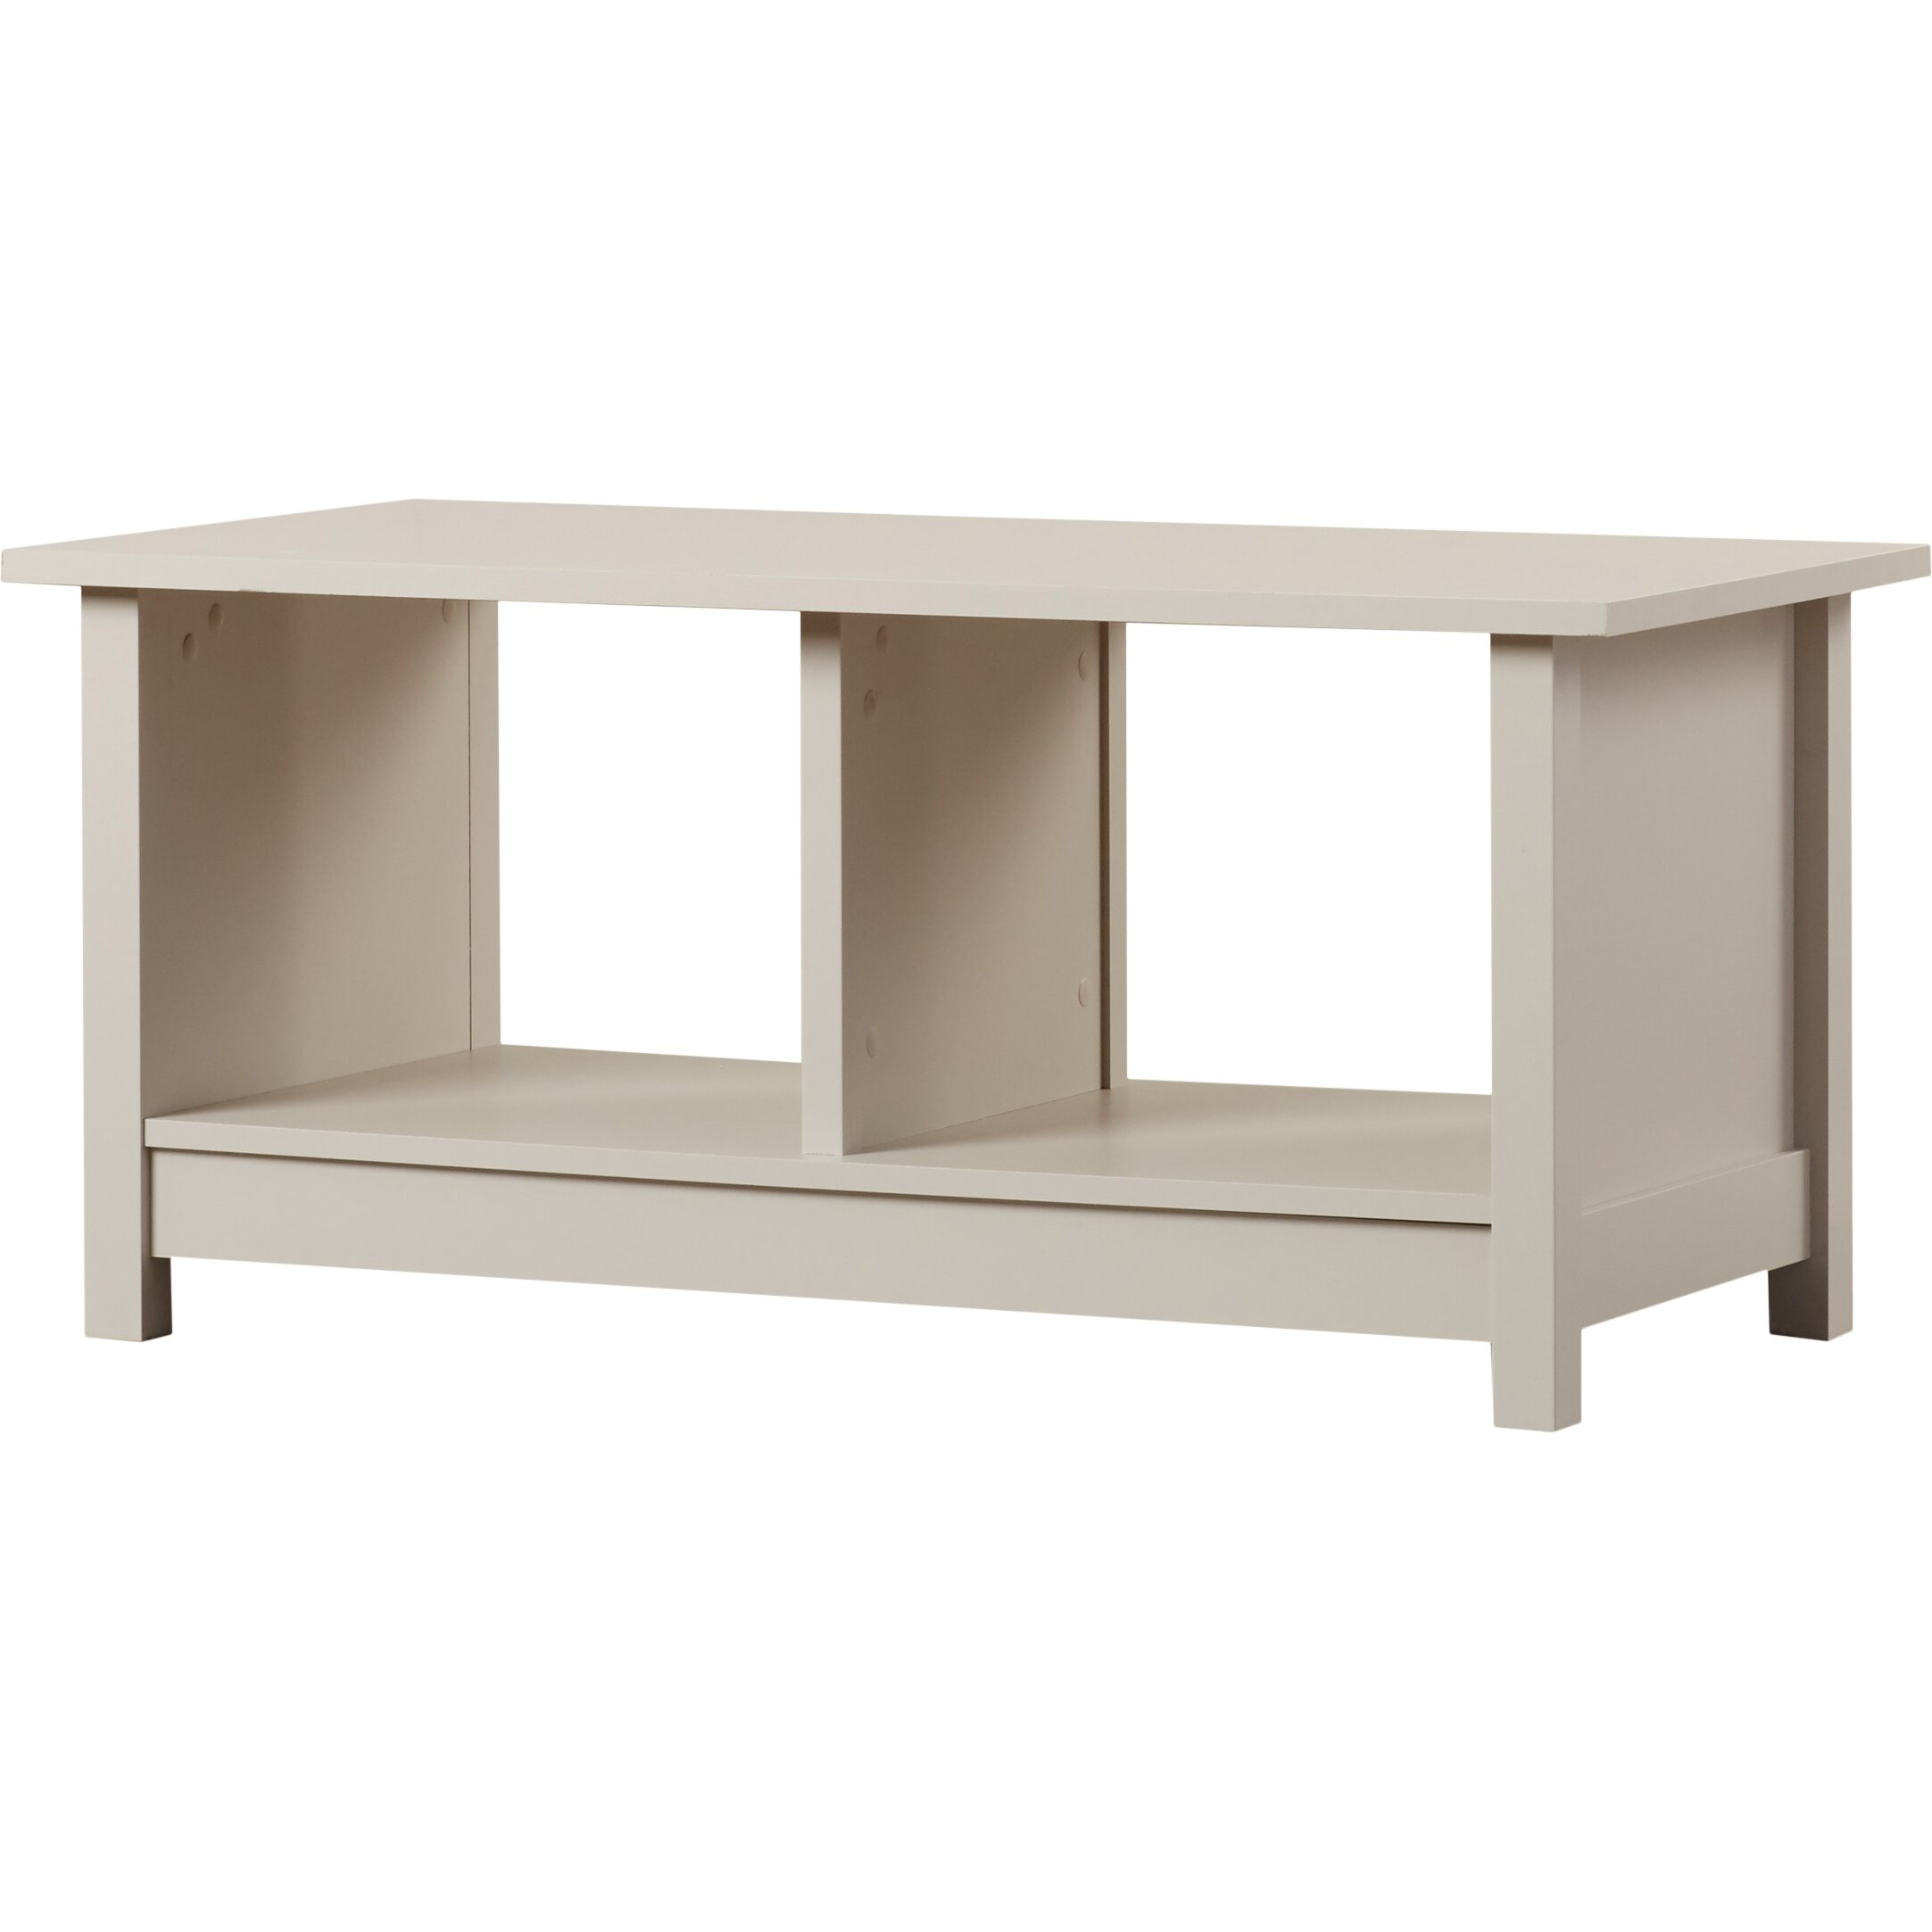 Artsy Coffee Tables Coffee Tables Youll Love Wayfair